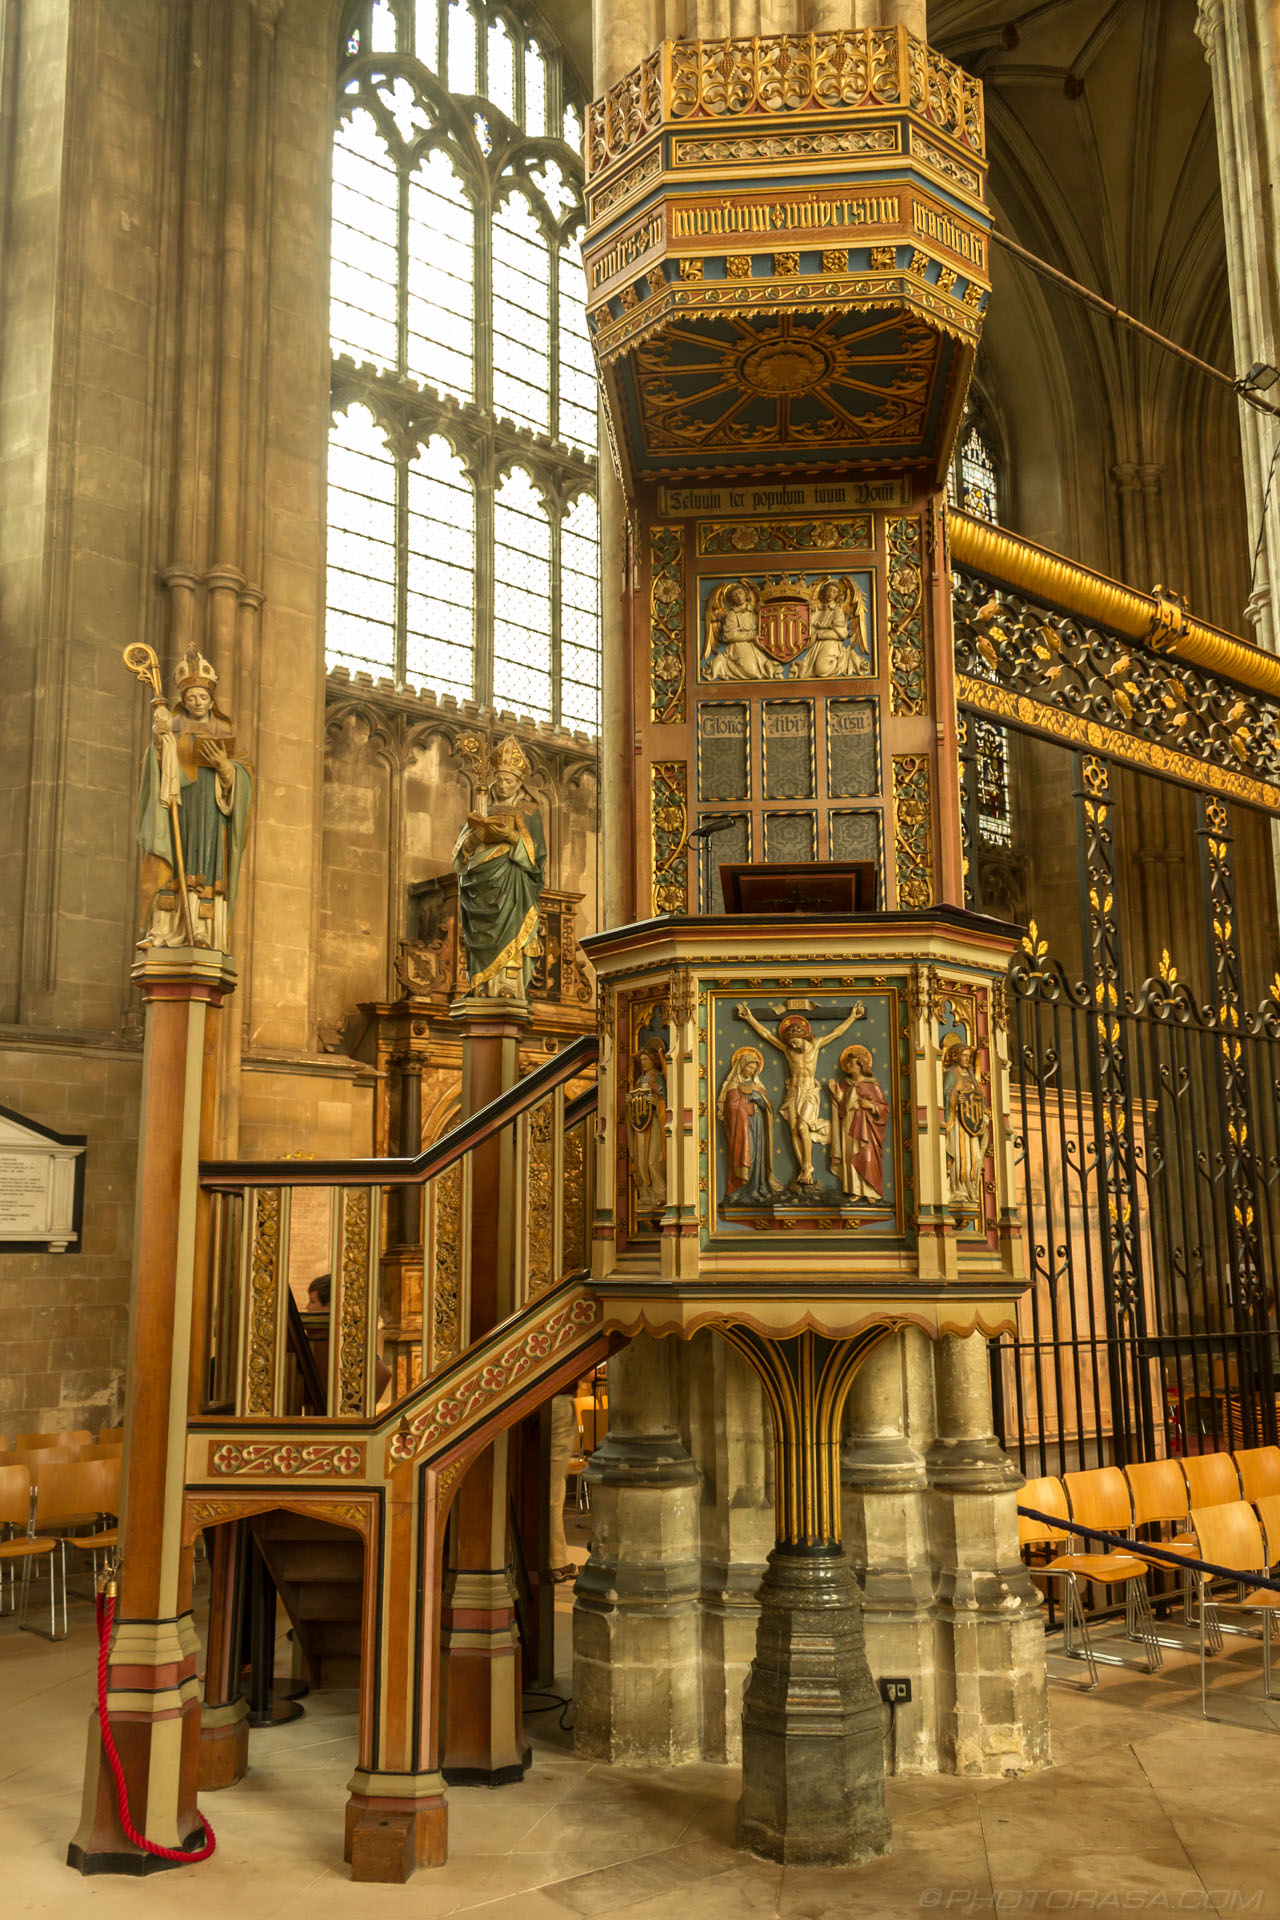 http://photorasa.com/canterbury-cathedral/ornately-carved-pulpit/